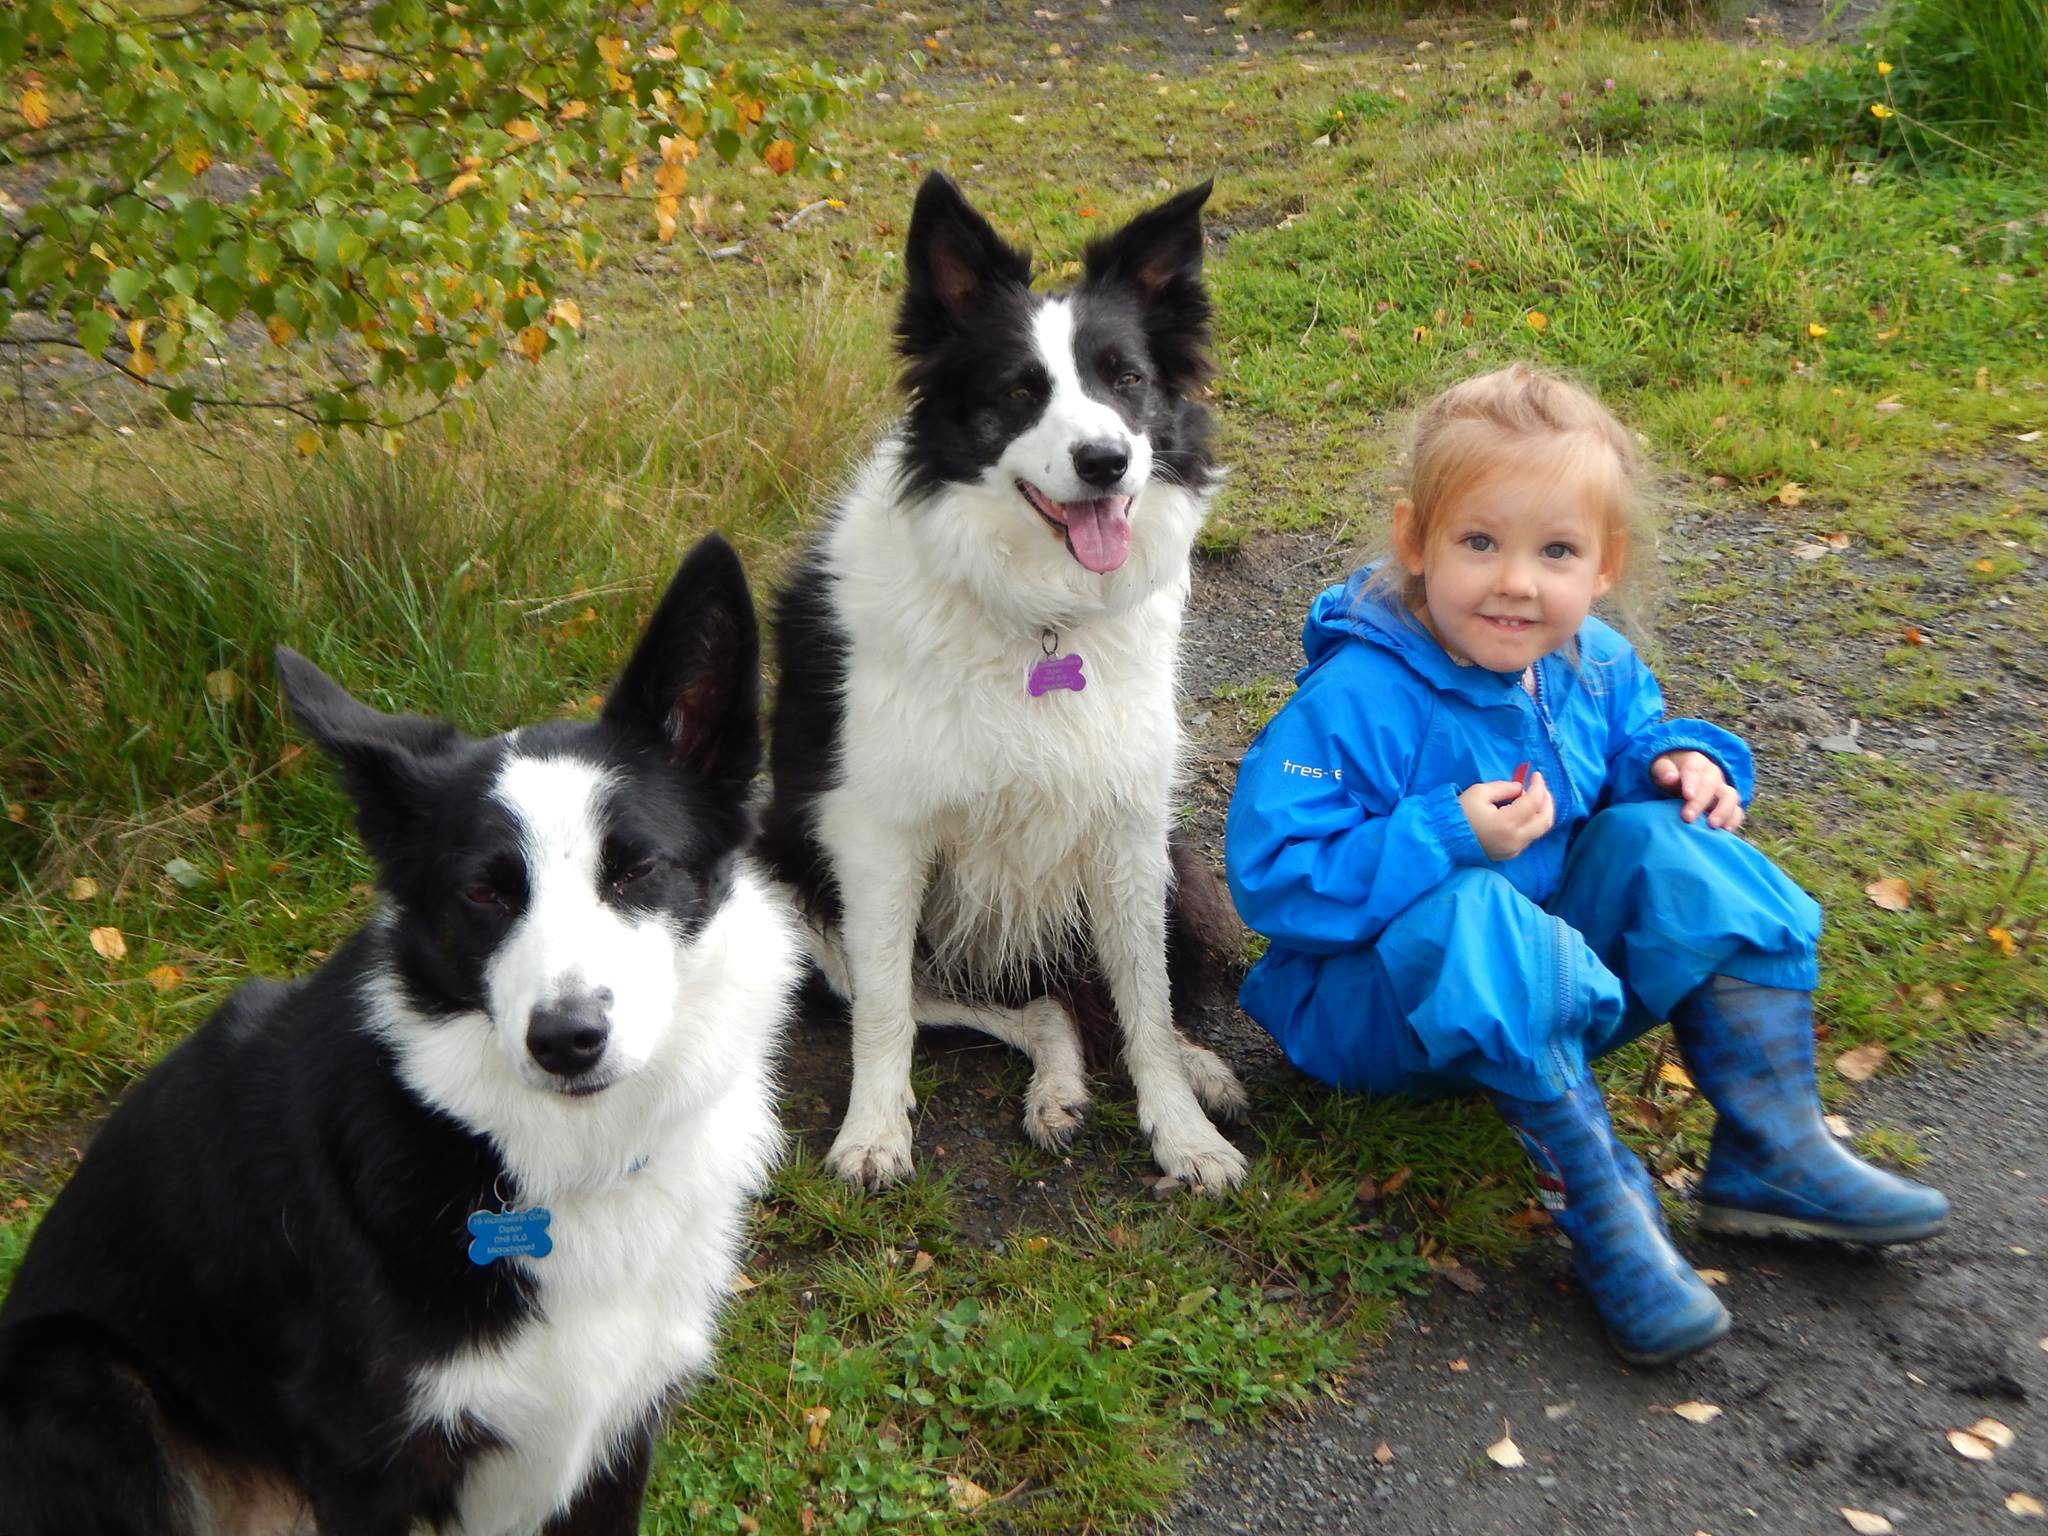 Kids & Canines